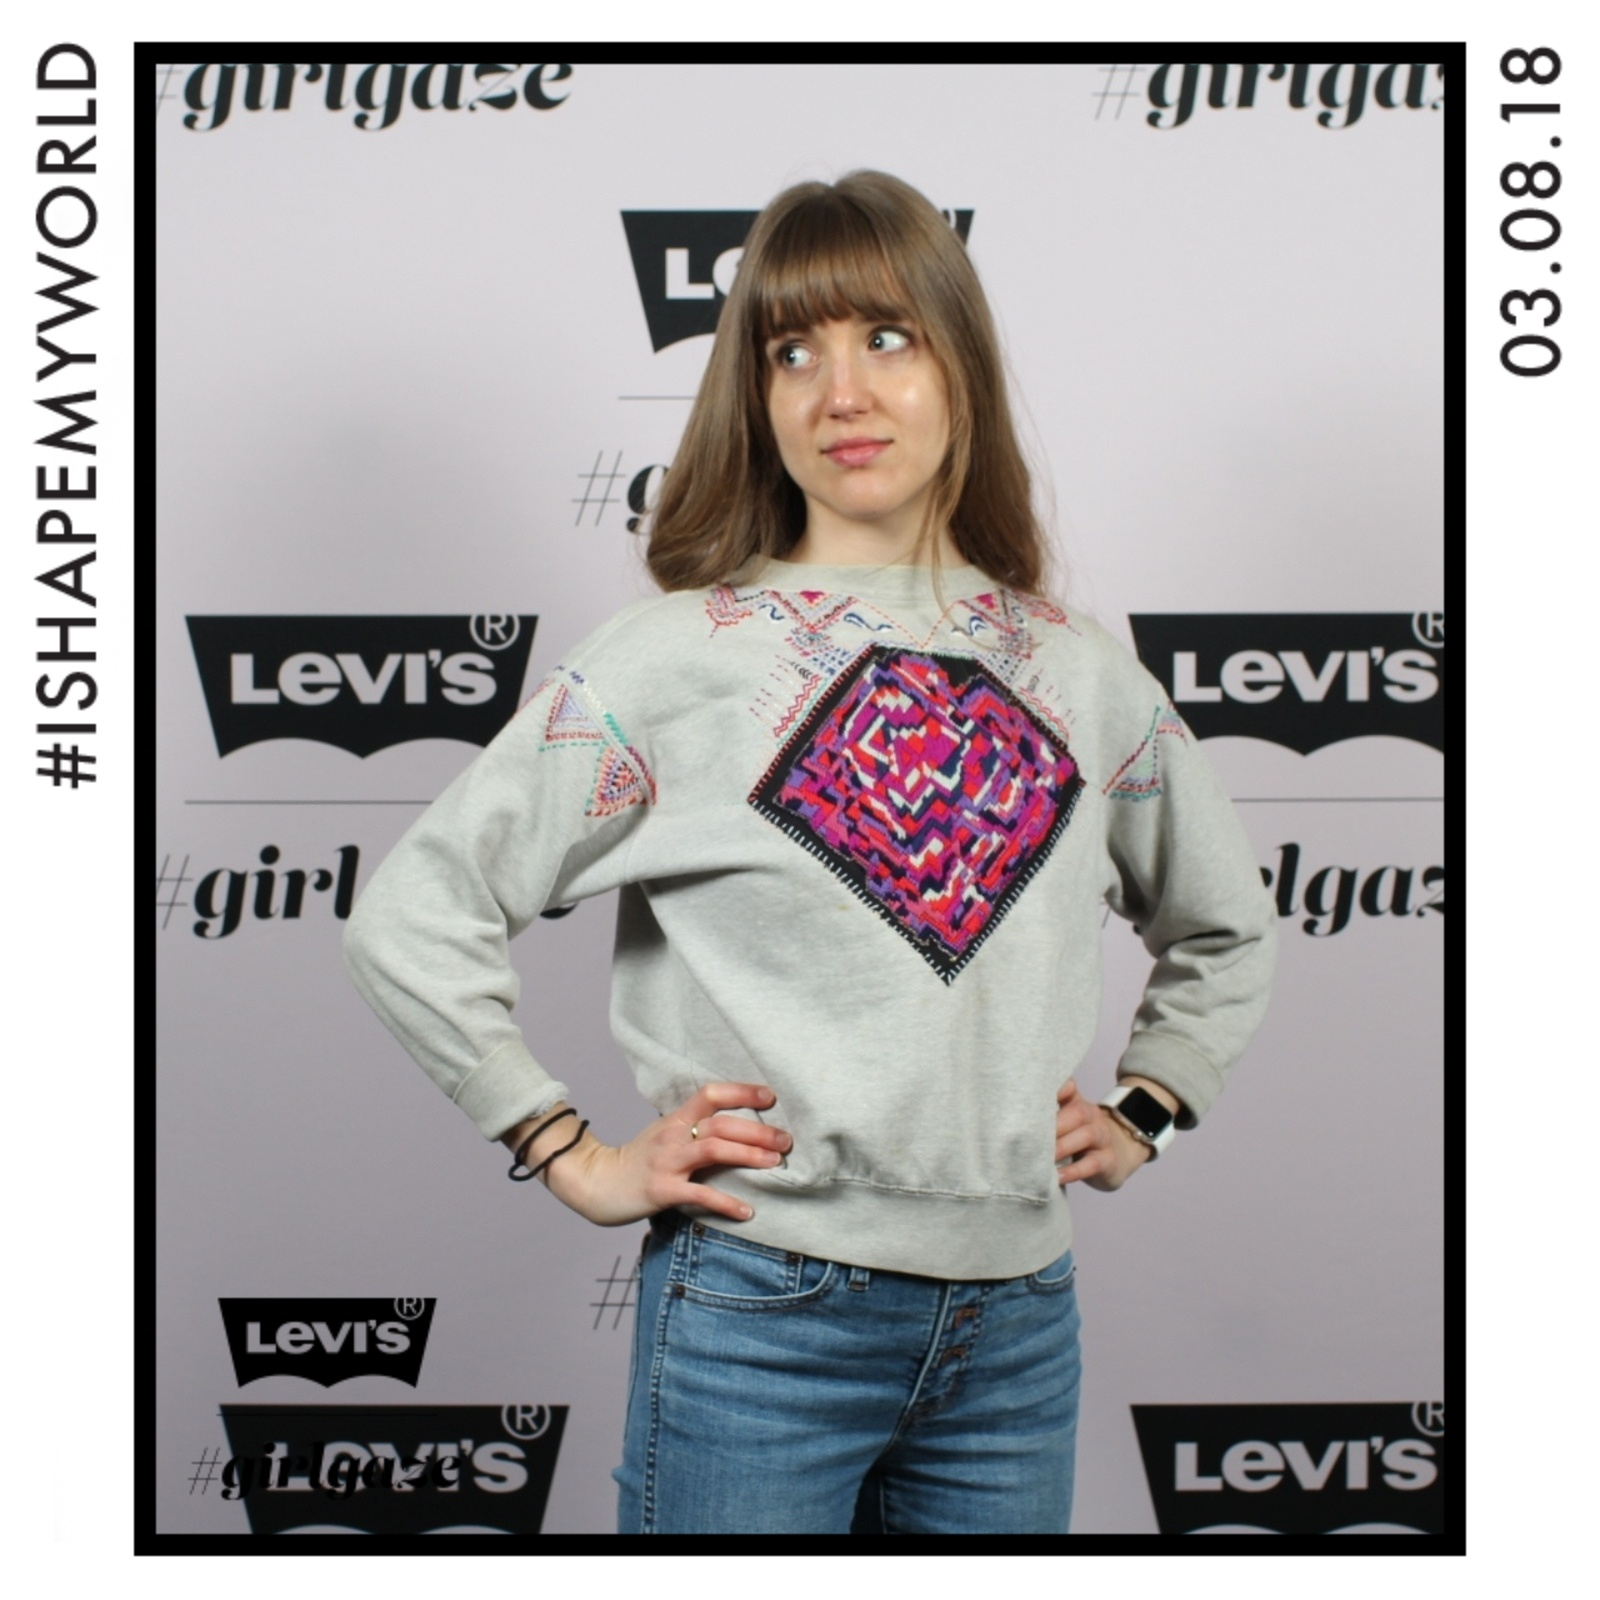 I went to an awesome girlgaze event in my sweatshirt. This picture cracks me up.